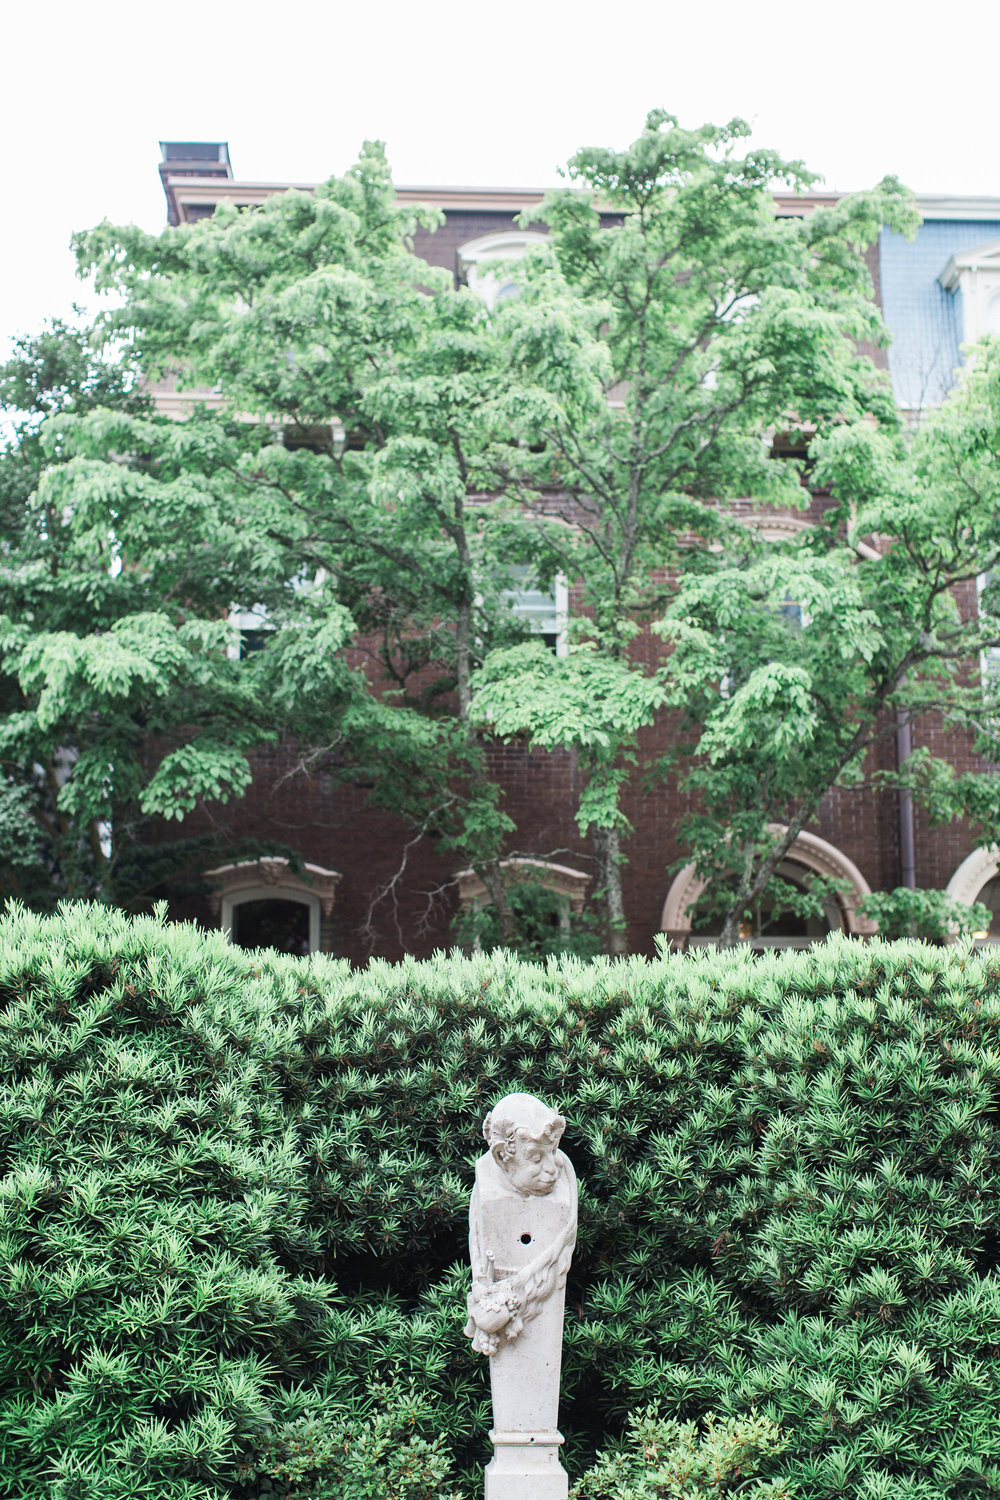 harper-fowlkes-house-wedding-ivory-and-beau-savannah-wedding-planner-savannah-event-designer-savannah-wedding-florist-historic-home-wedding-in-savannah-georgia-destination-wedding-planner-3.jpg